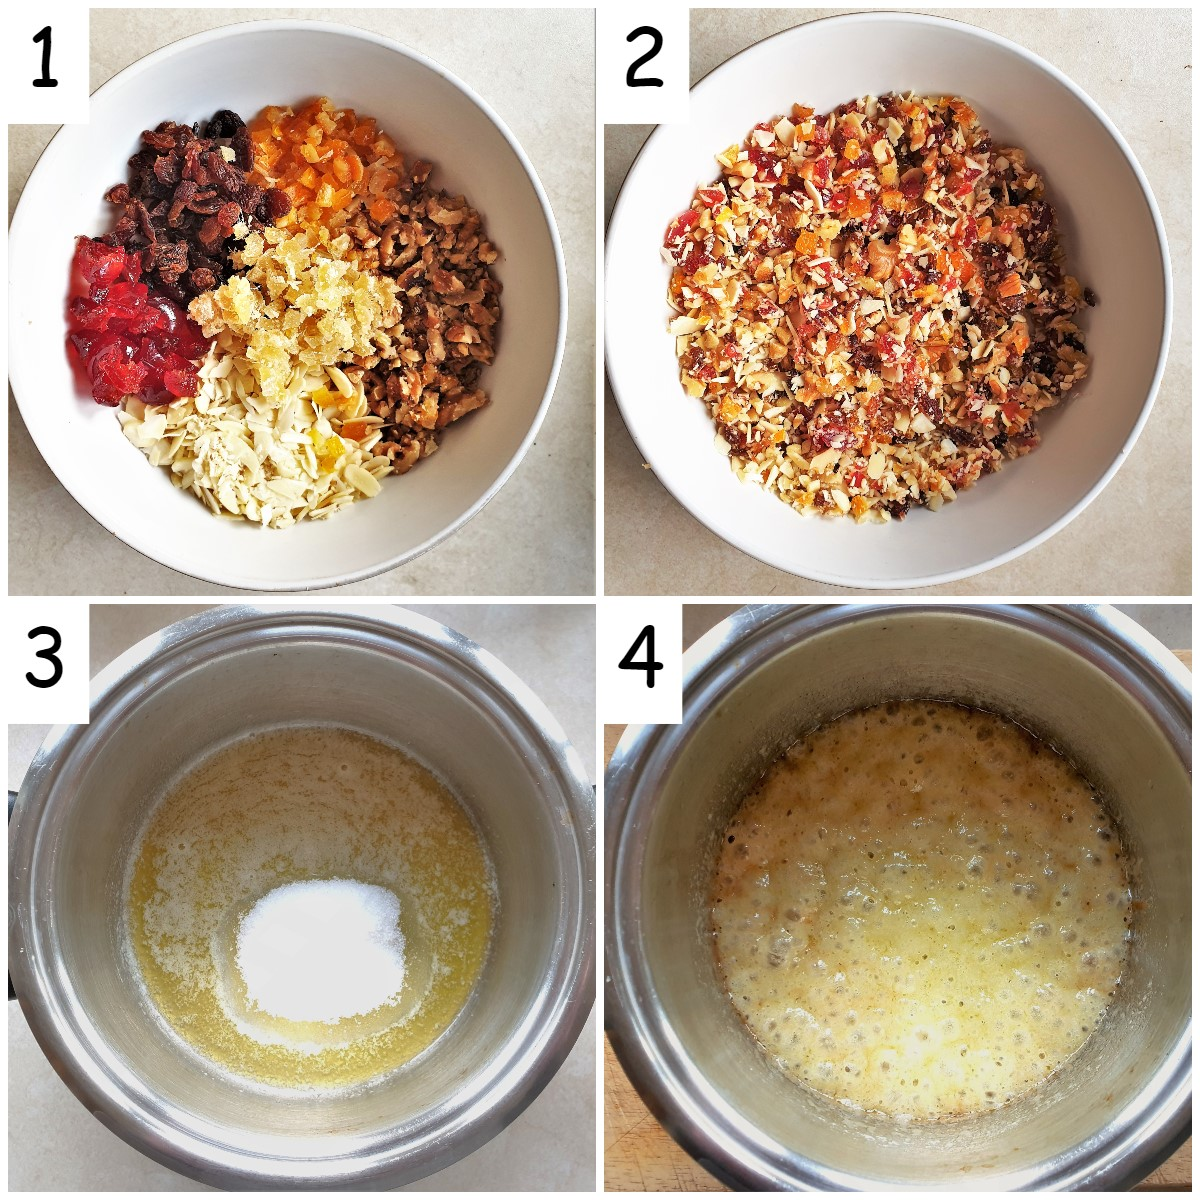 Steps for mixing the florentines.